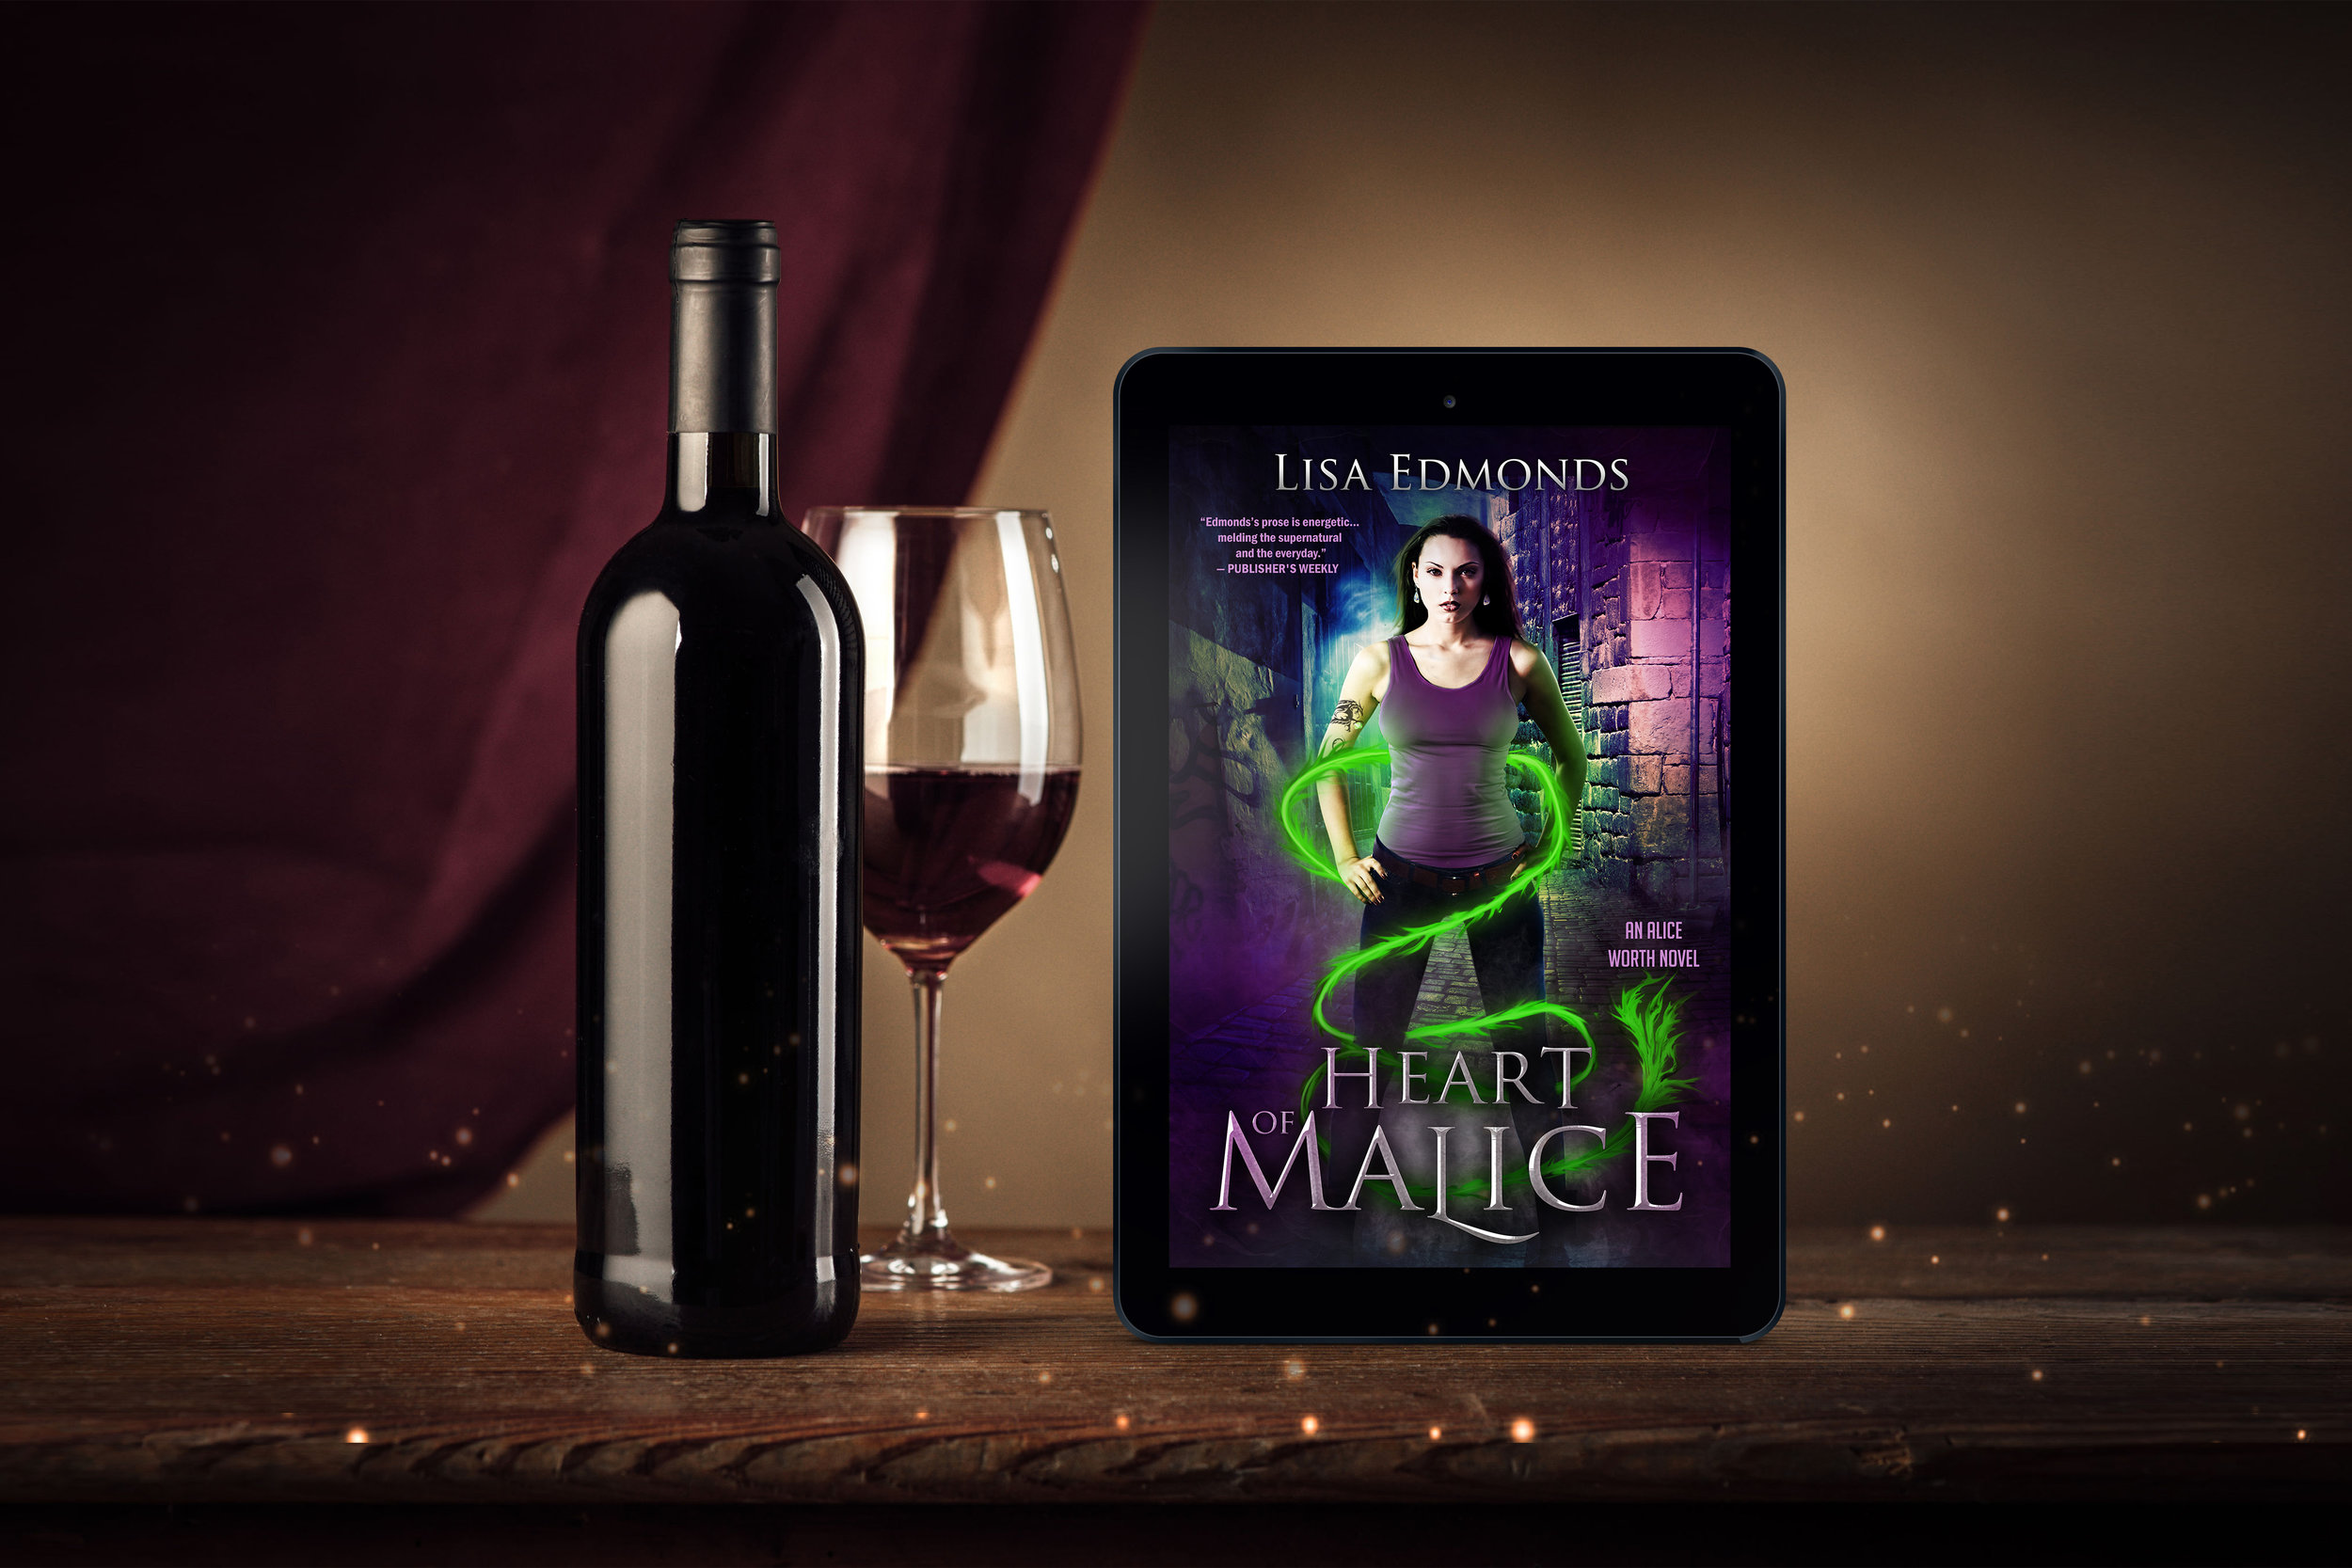 Download three free chapters of Heart of Malice! - Click the link below to download your free sample in either Kindle or epub (Nook, etc.) format